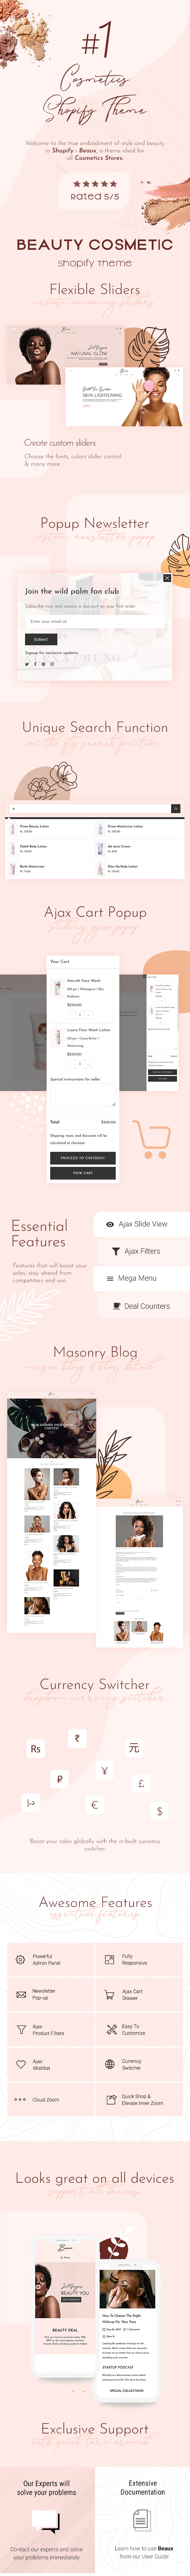 Beaux - Cosmetic Store Shopify Theme - 2